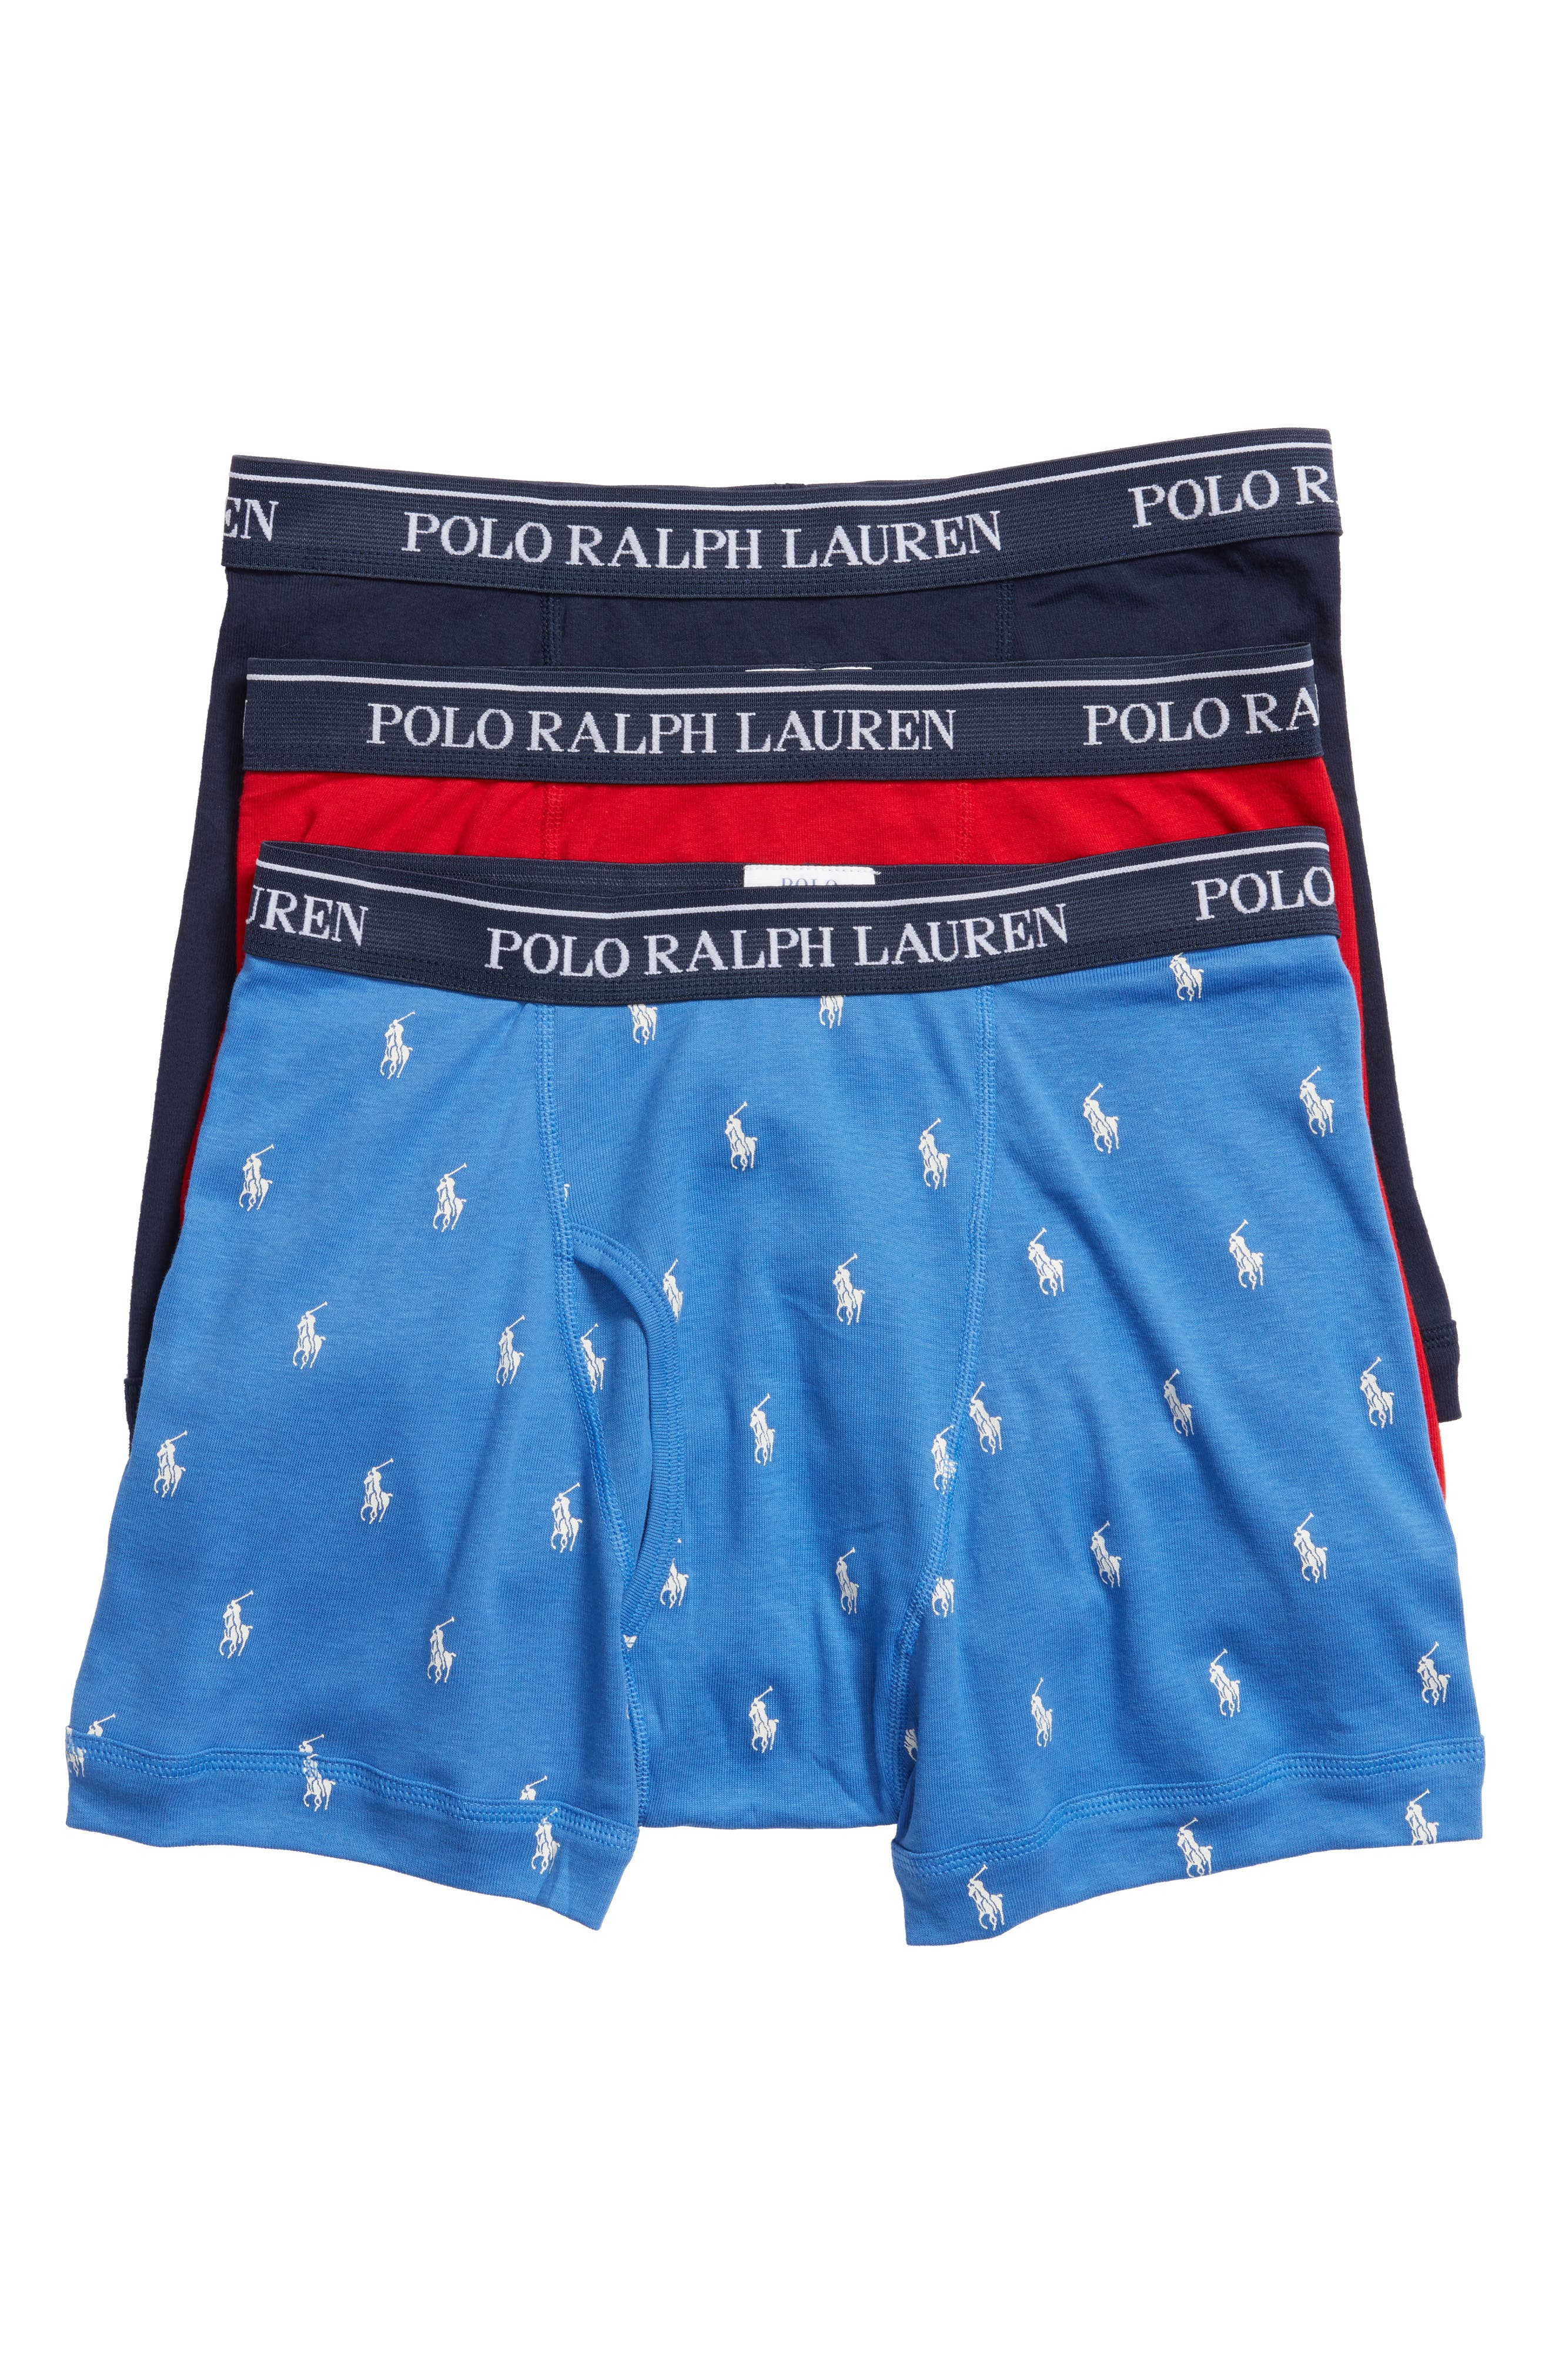 Polo Ralph Lauren Assorted 3-Pack Cotton Boxer Briefs